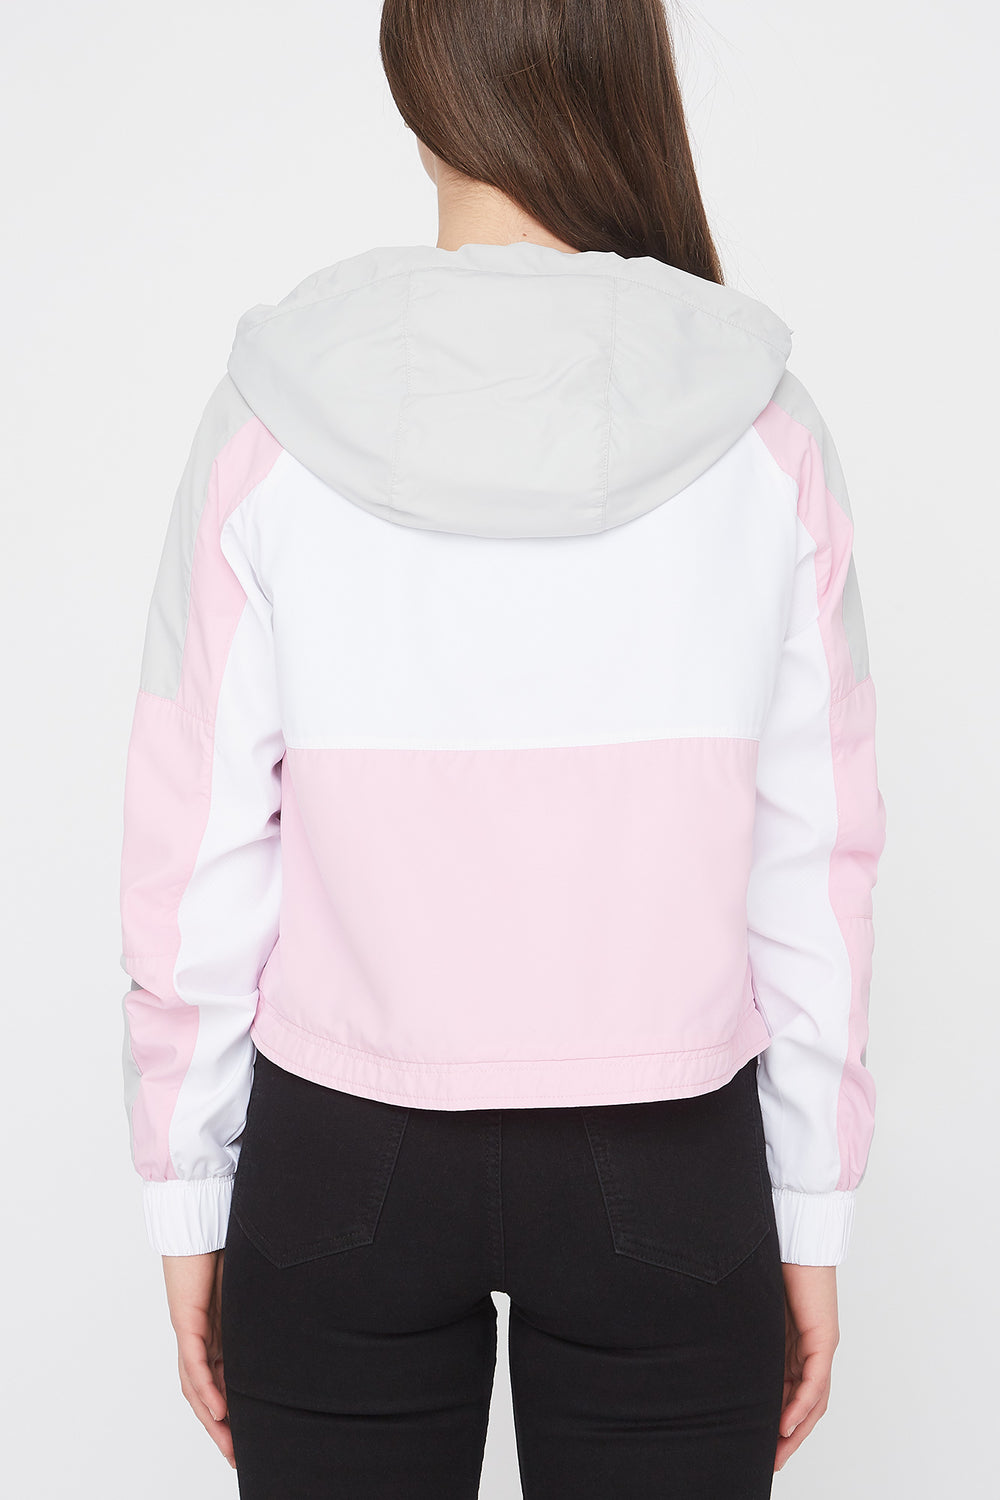 Zoo York Womens Cropped Colour Block Jacket Light Pink